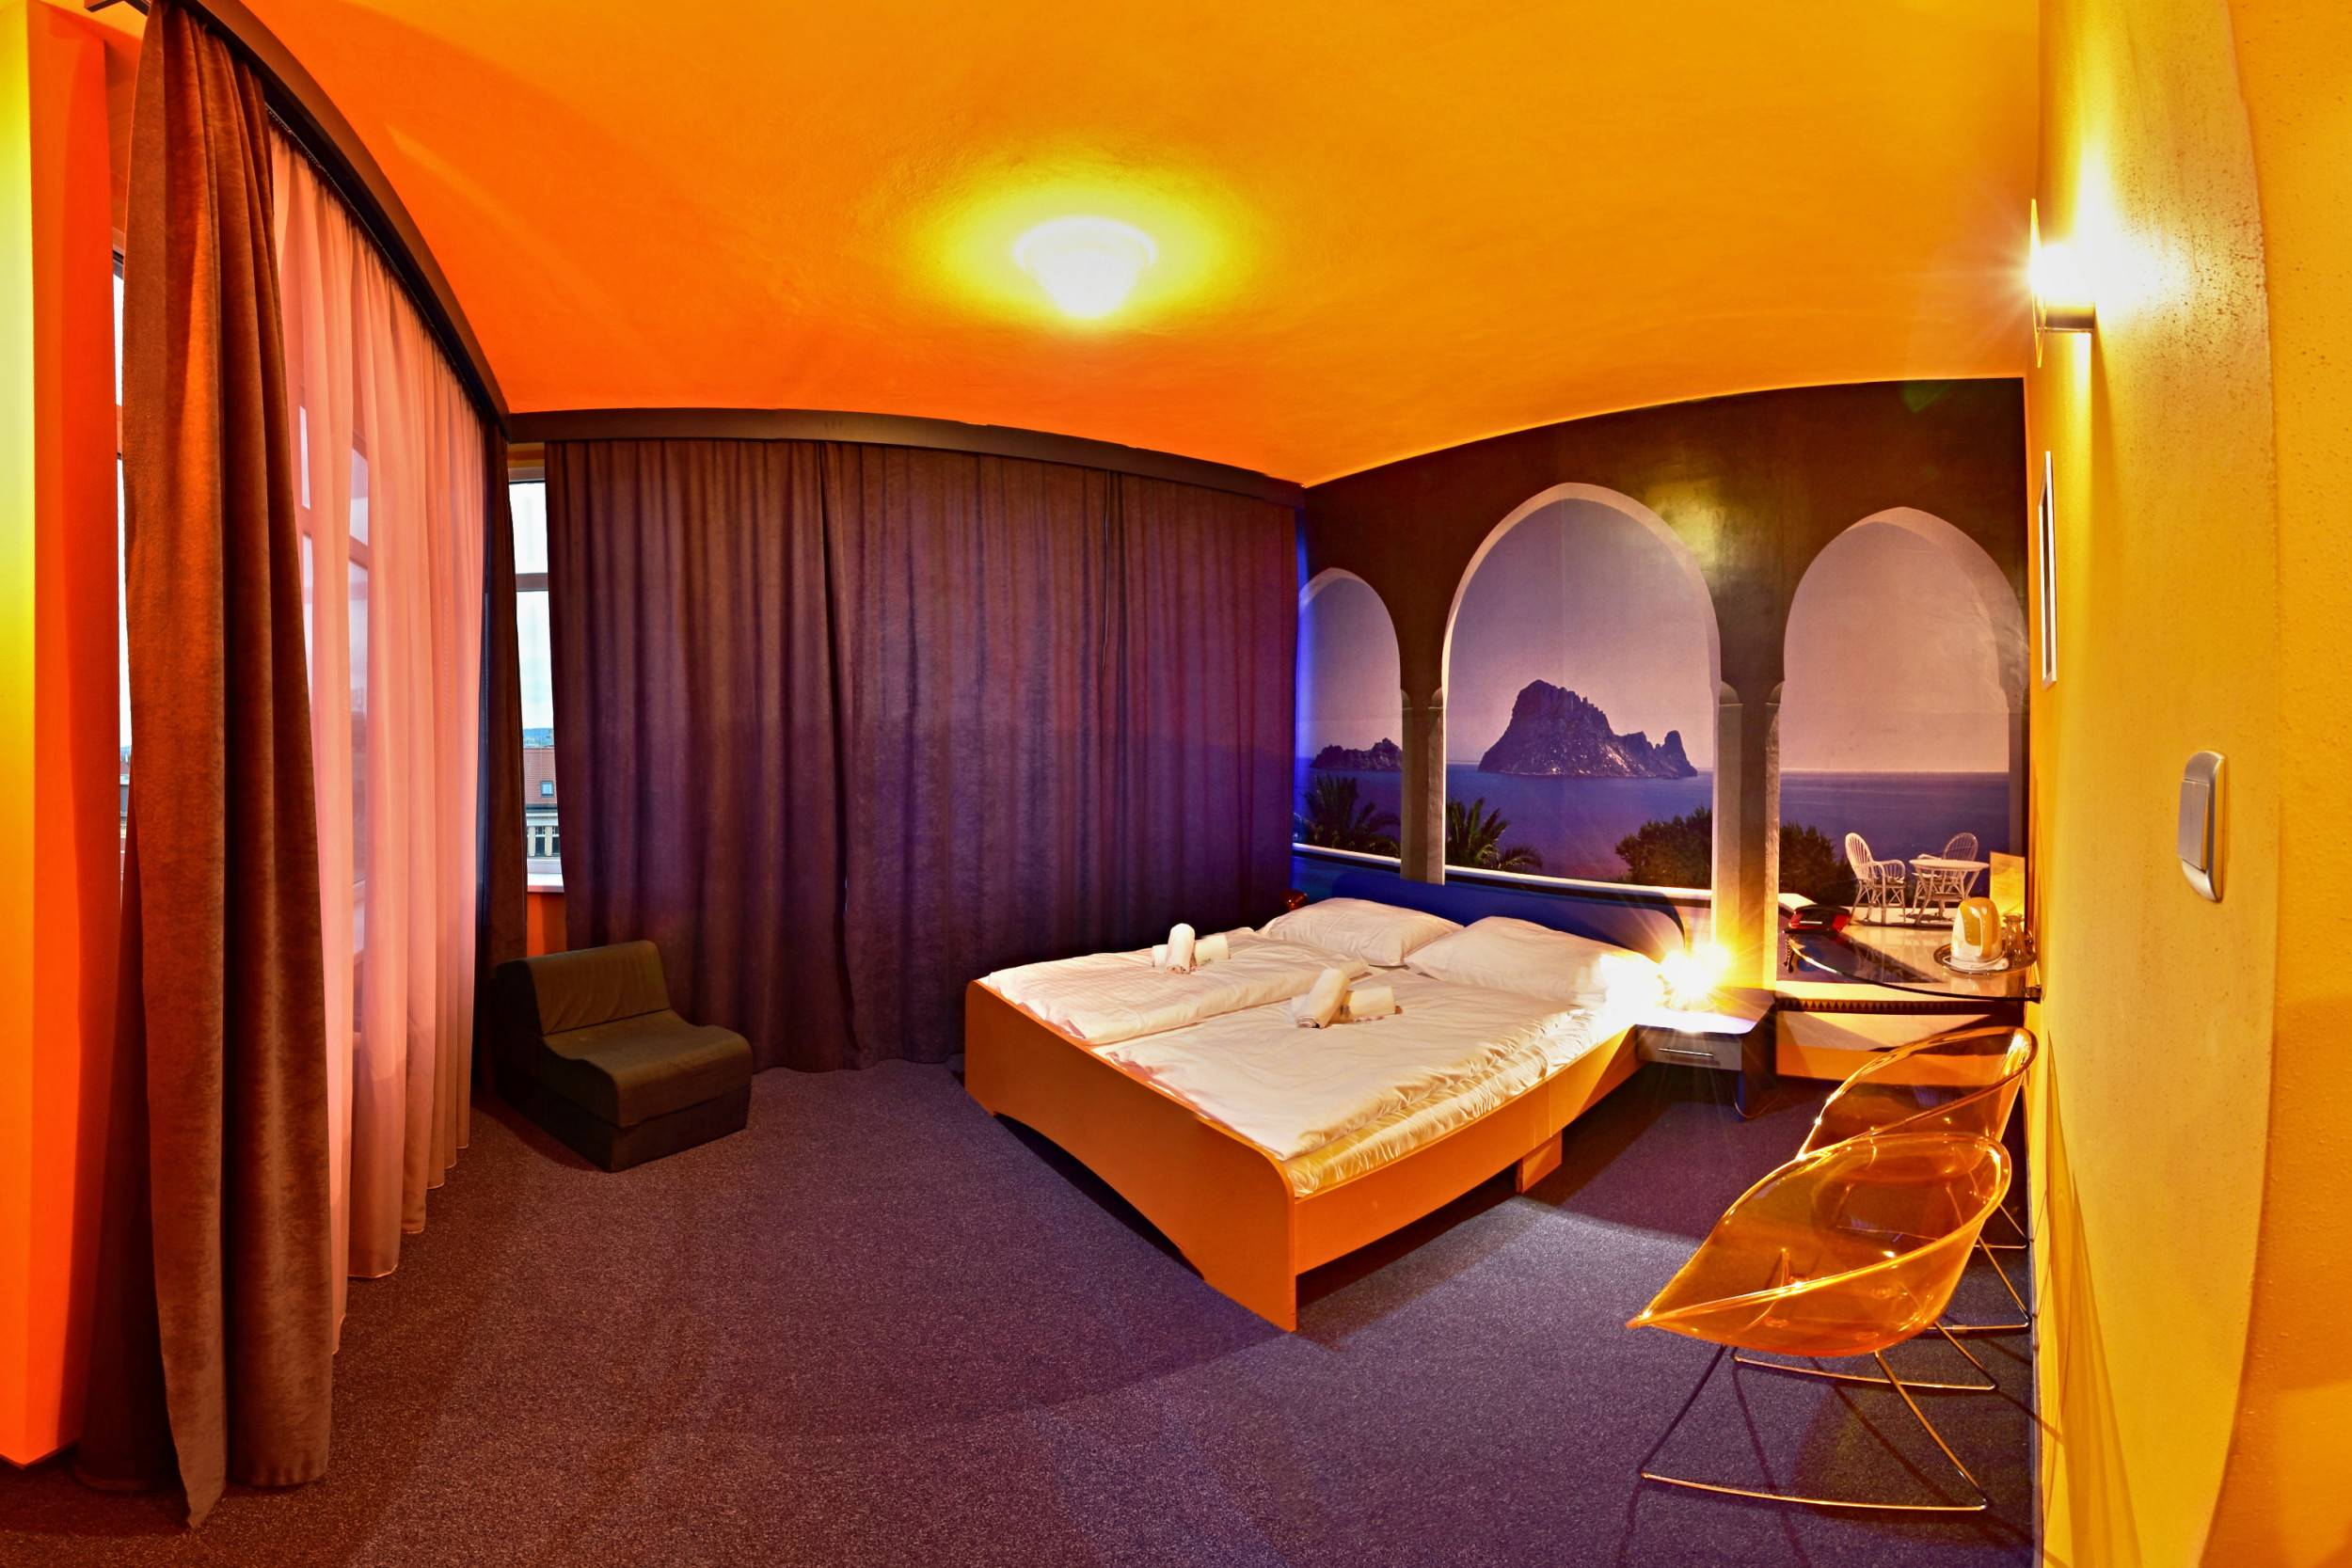 Standard room Hote Liberec - Blue & Orange